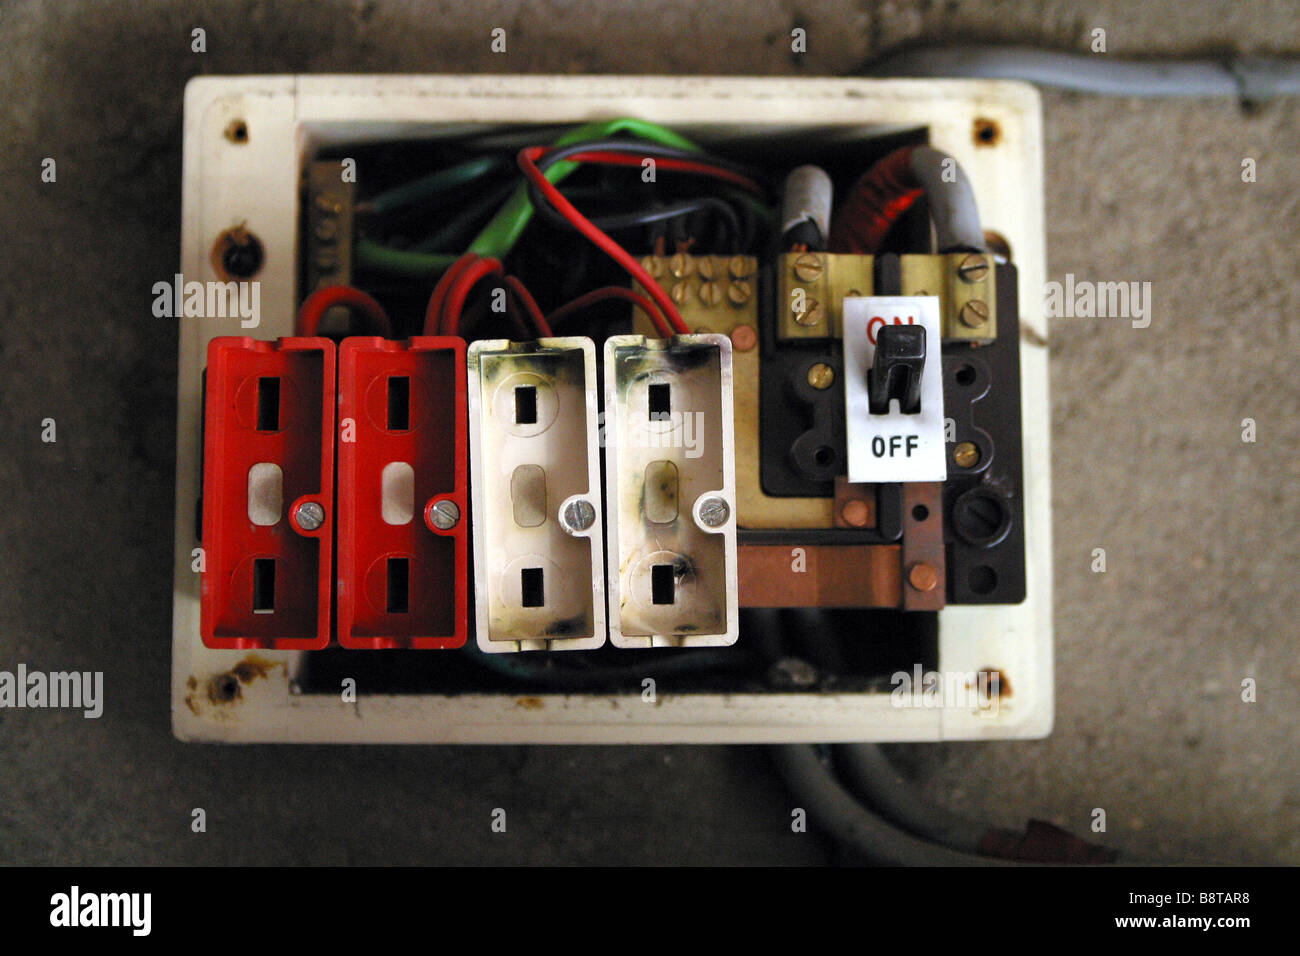 hight resolution of old fuse box wiring wiring diagram schemes old fashioned gas tank old barn fuse box wiring